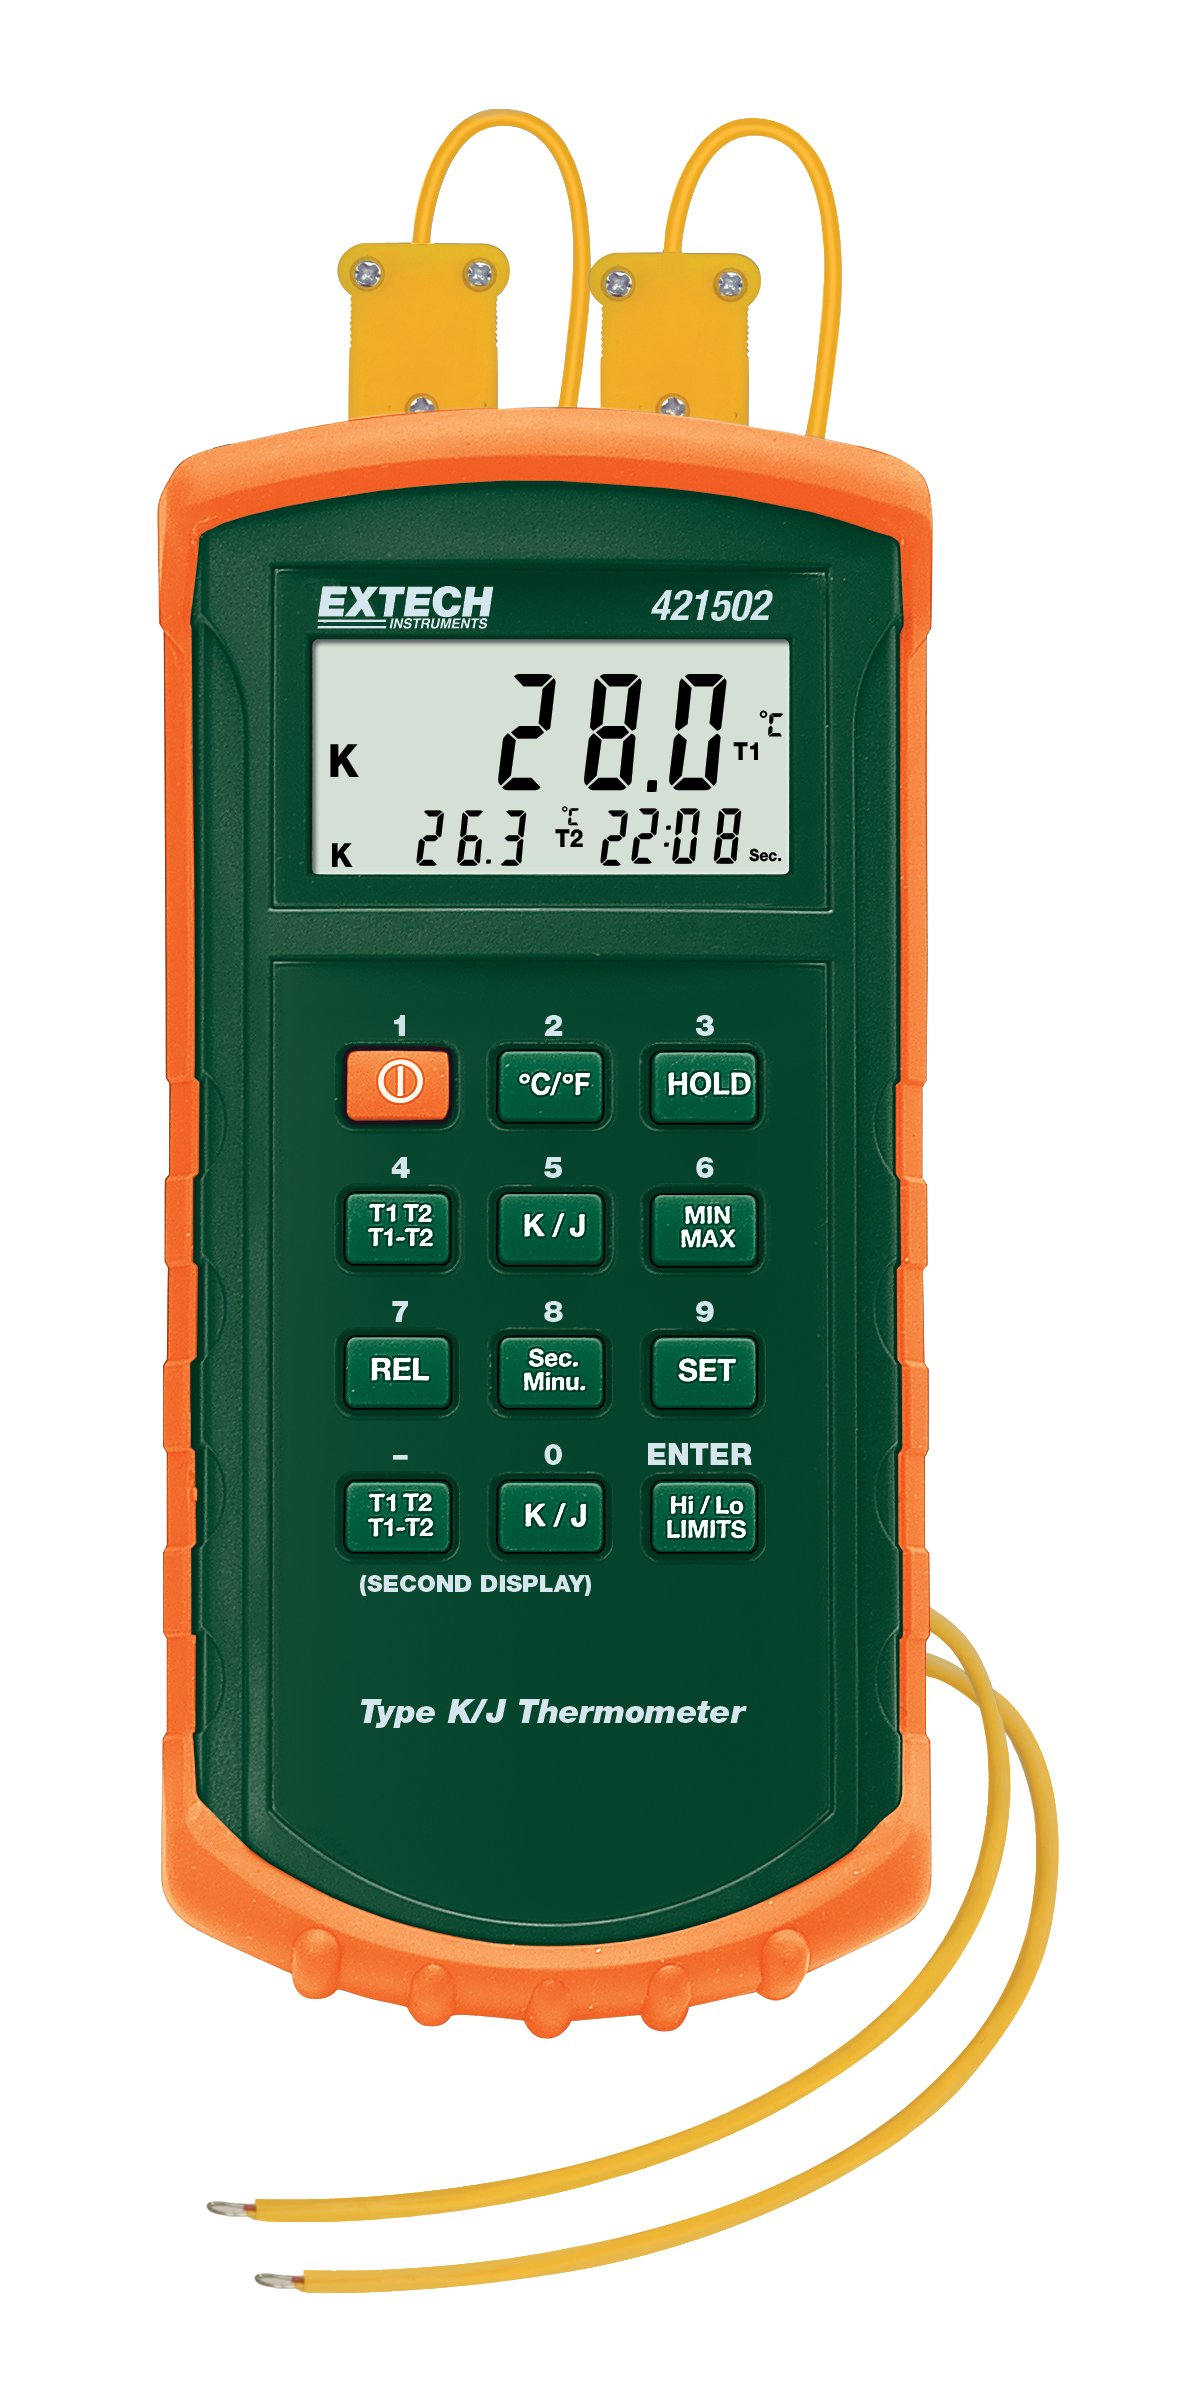 Extech 421502 Type J/K Dual Input Thermometer with Alarm